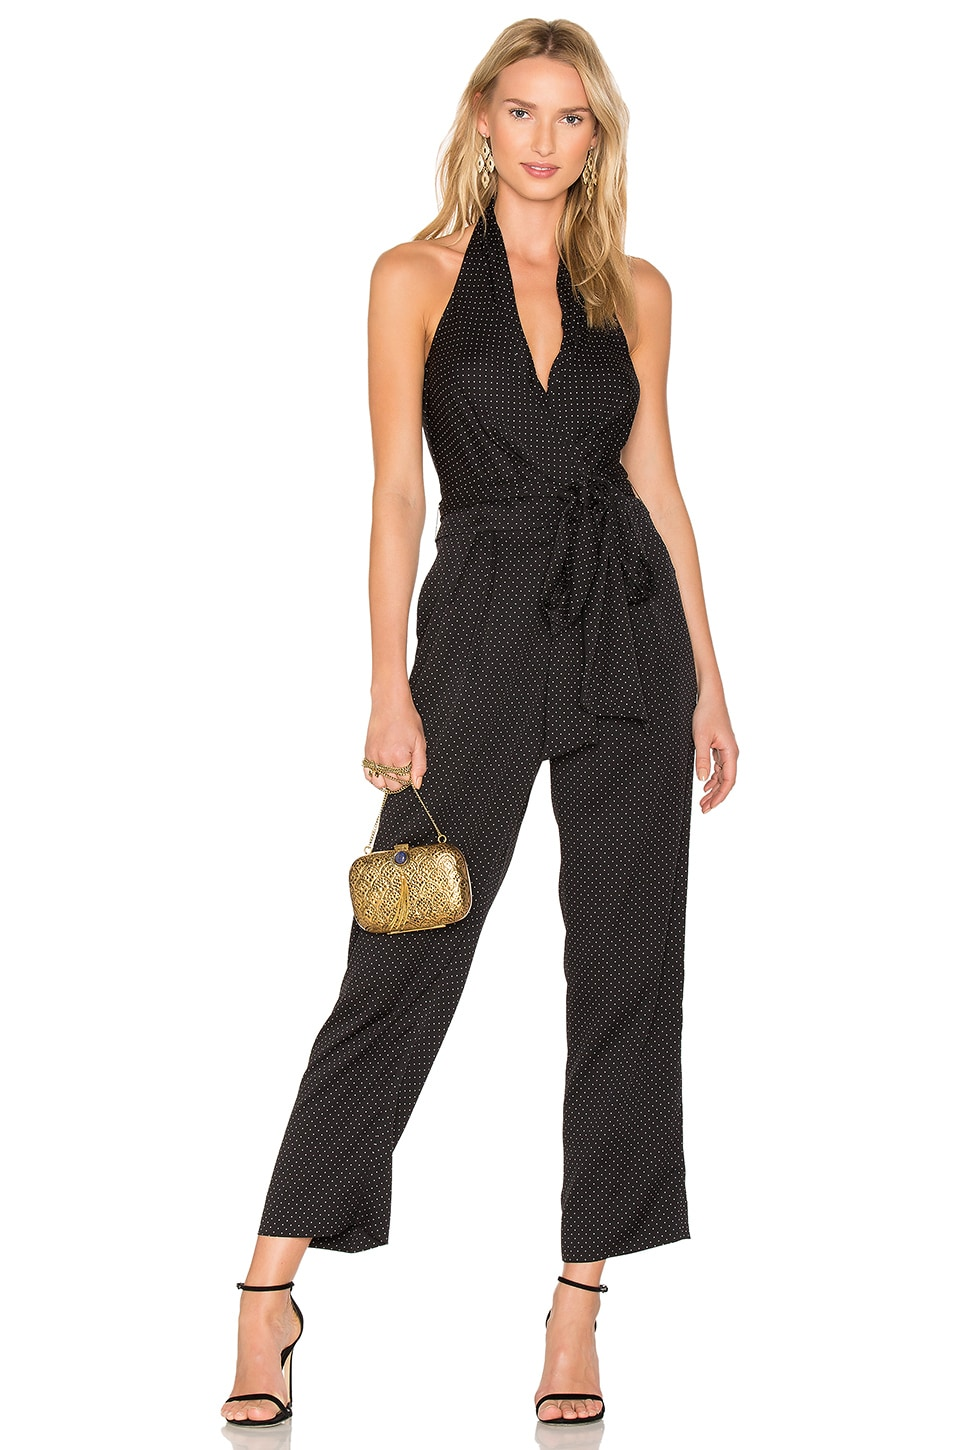 Diane von Furstenberg Wrap Jumpsuit in Navier Dot Black